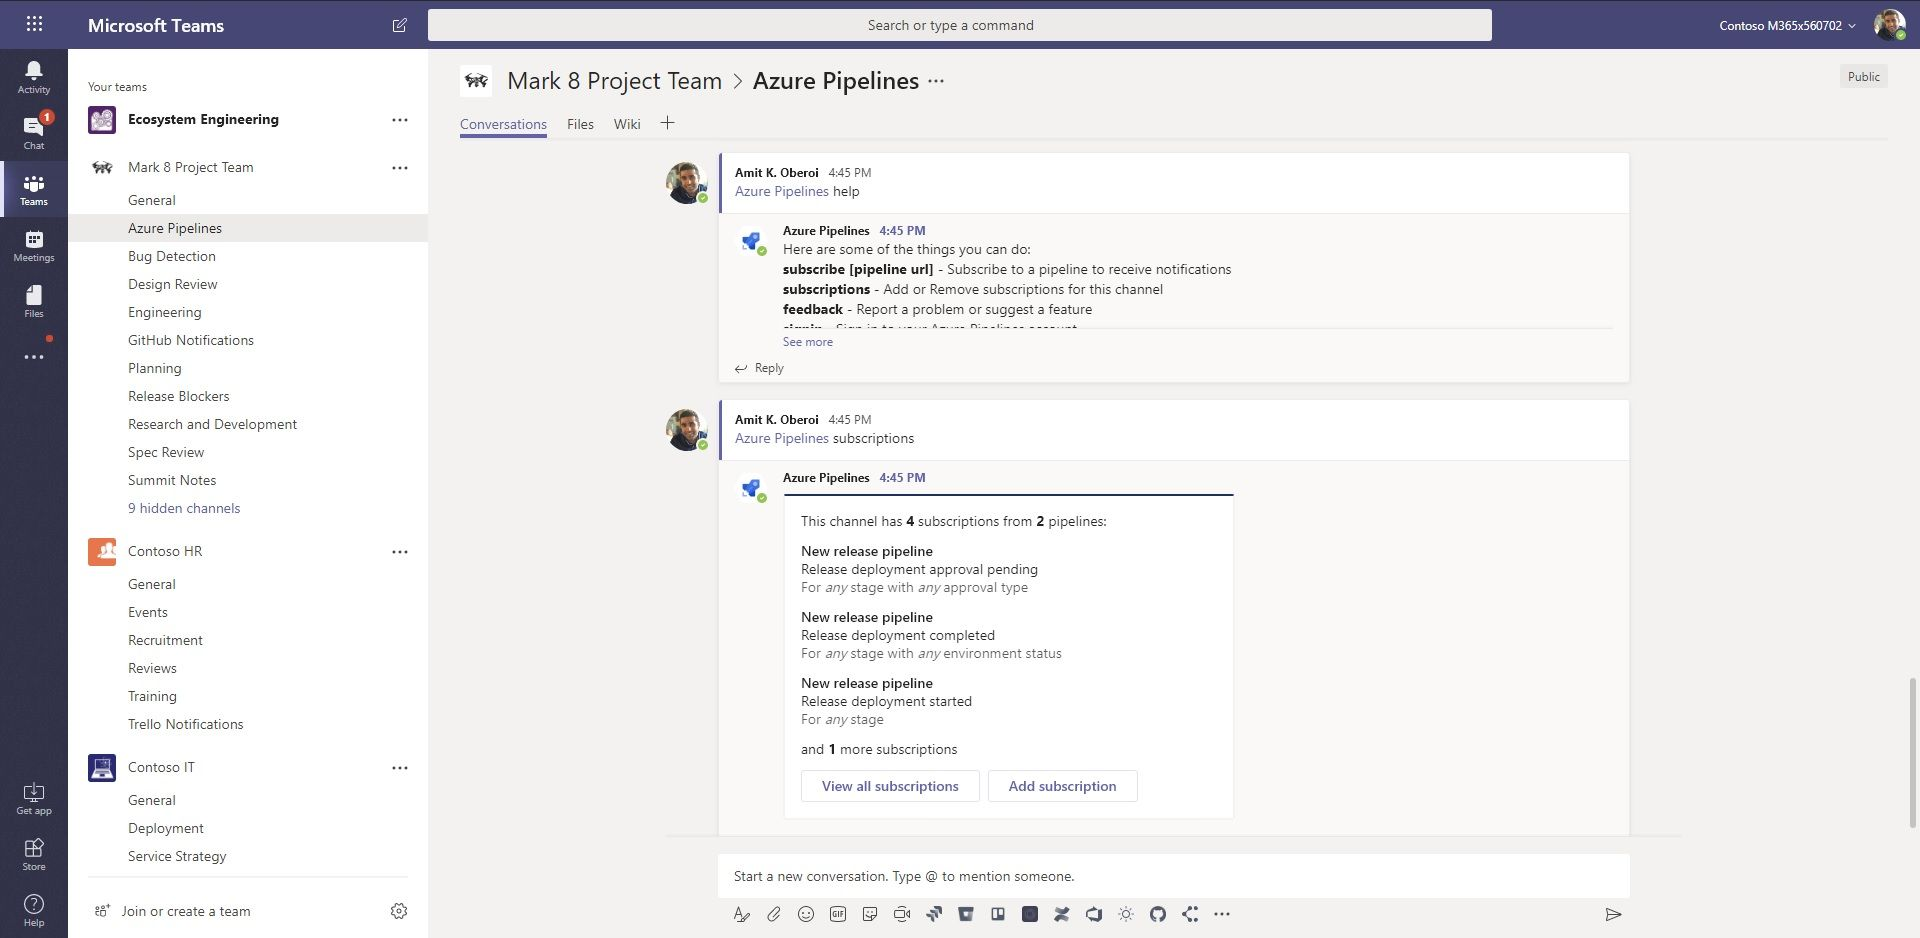 New! Azure Pipelines app for Microsoft Teams - Microsoft Tech